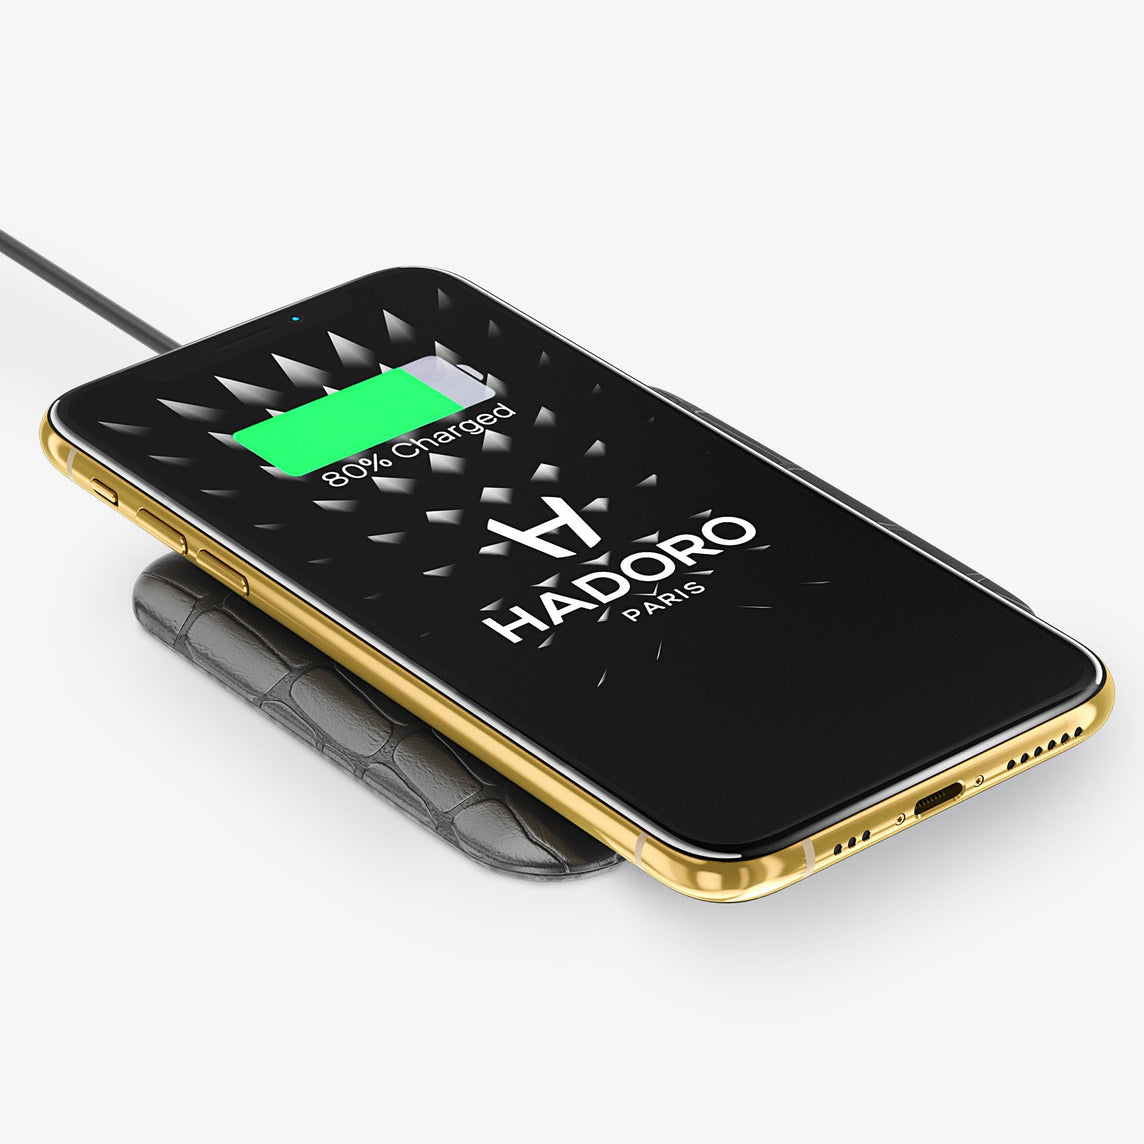 Alligator Hadoro Wireless Charging Pad | Grey - Yellow Gold without-personalization